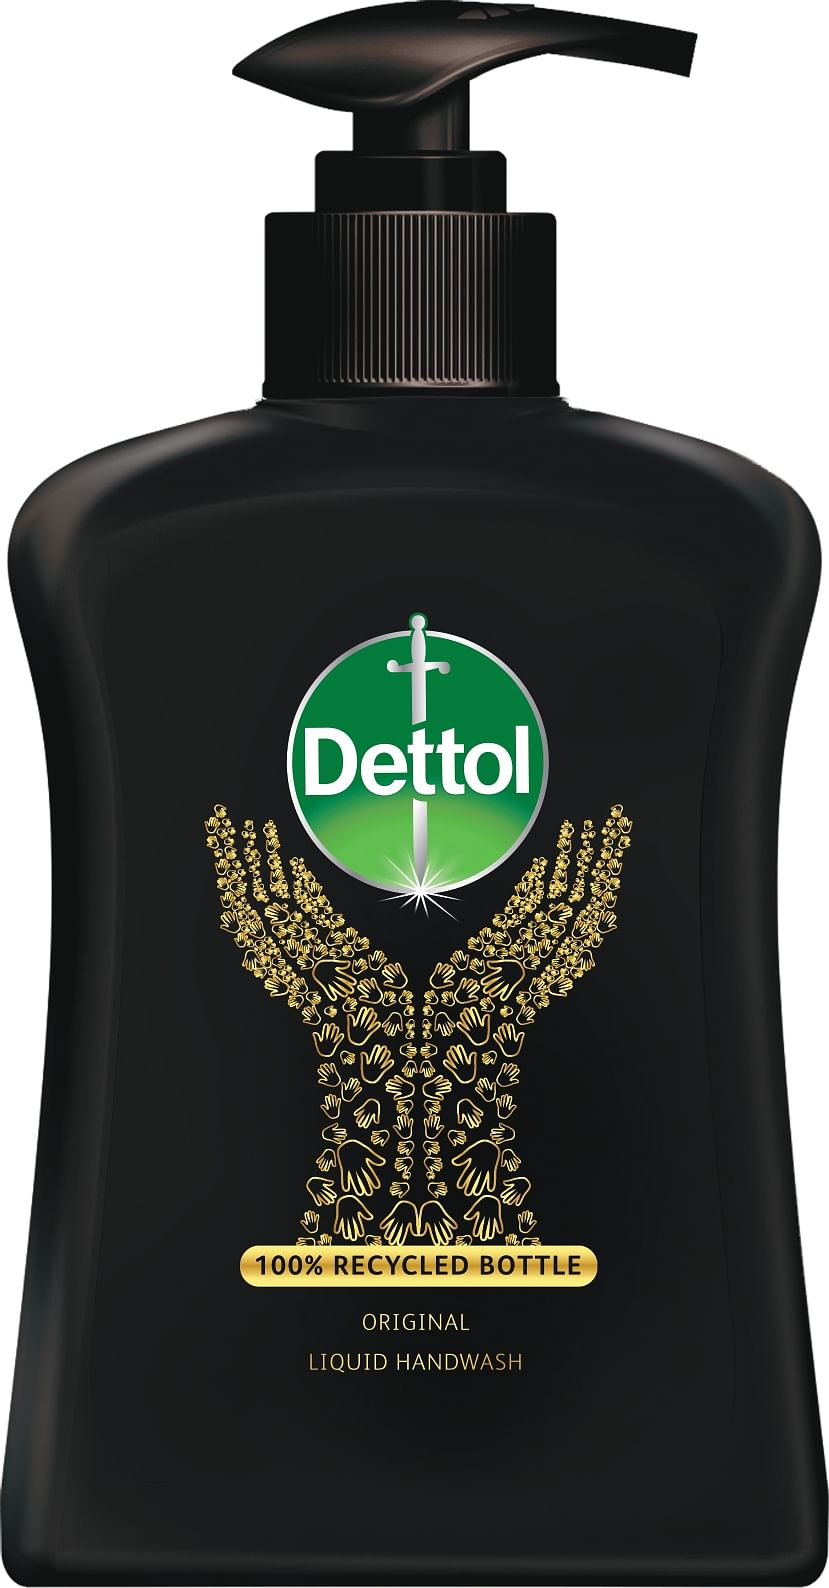 The new recycled packaging of Dettol Handwash